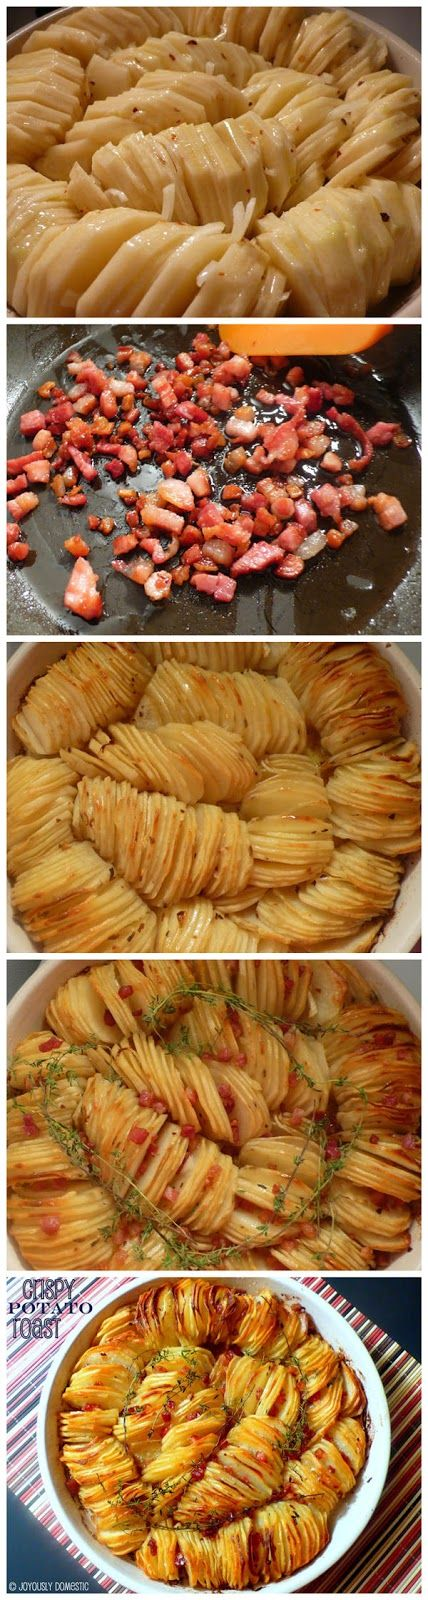 Crispy Potato Roast @tiinatolonen